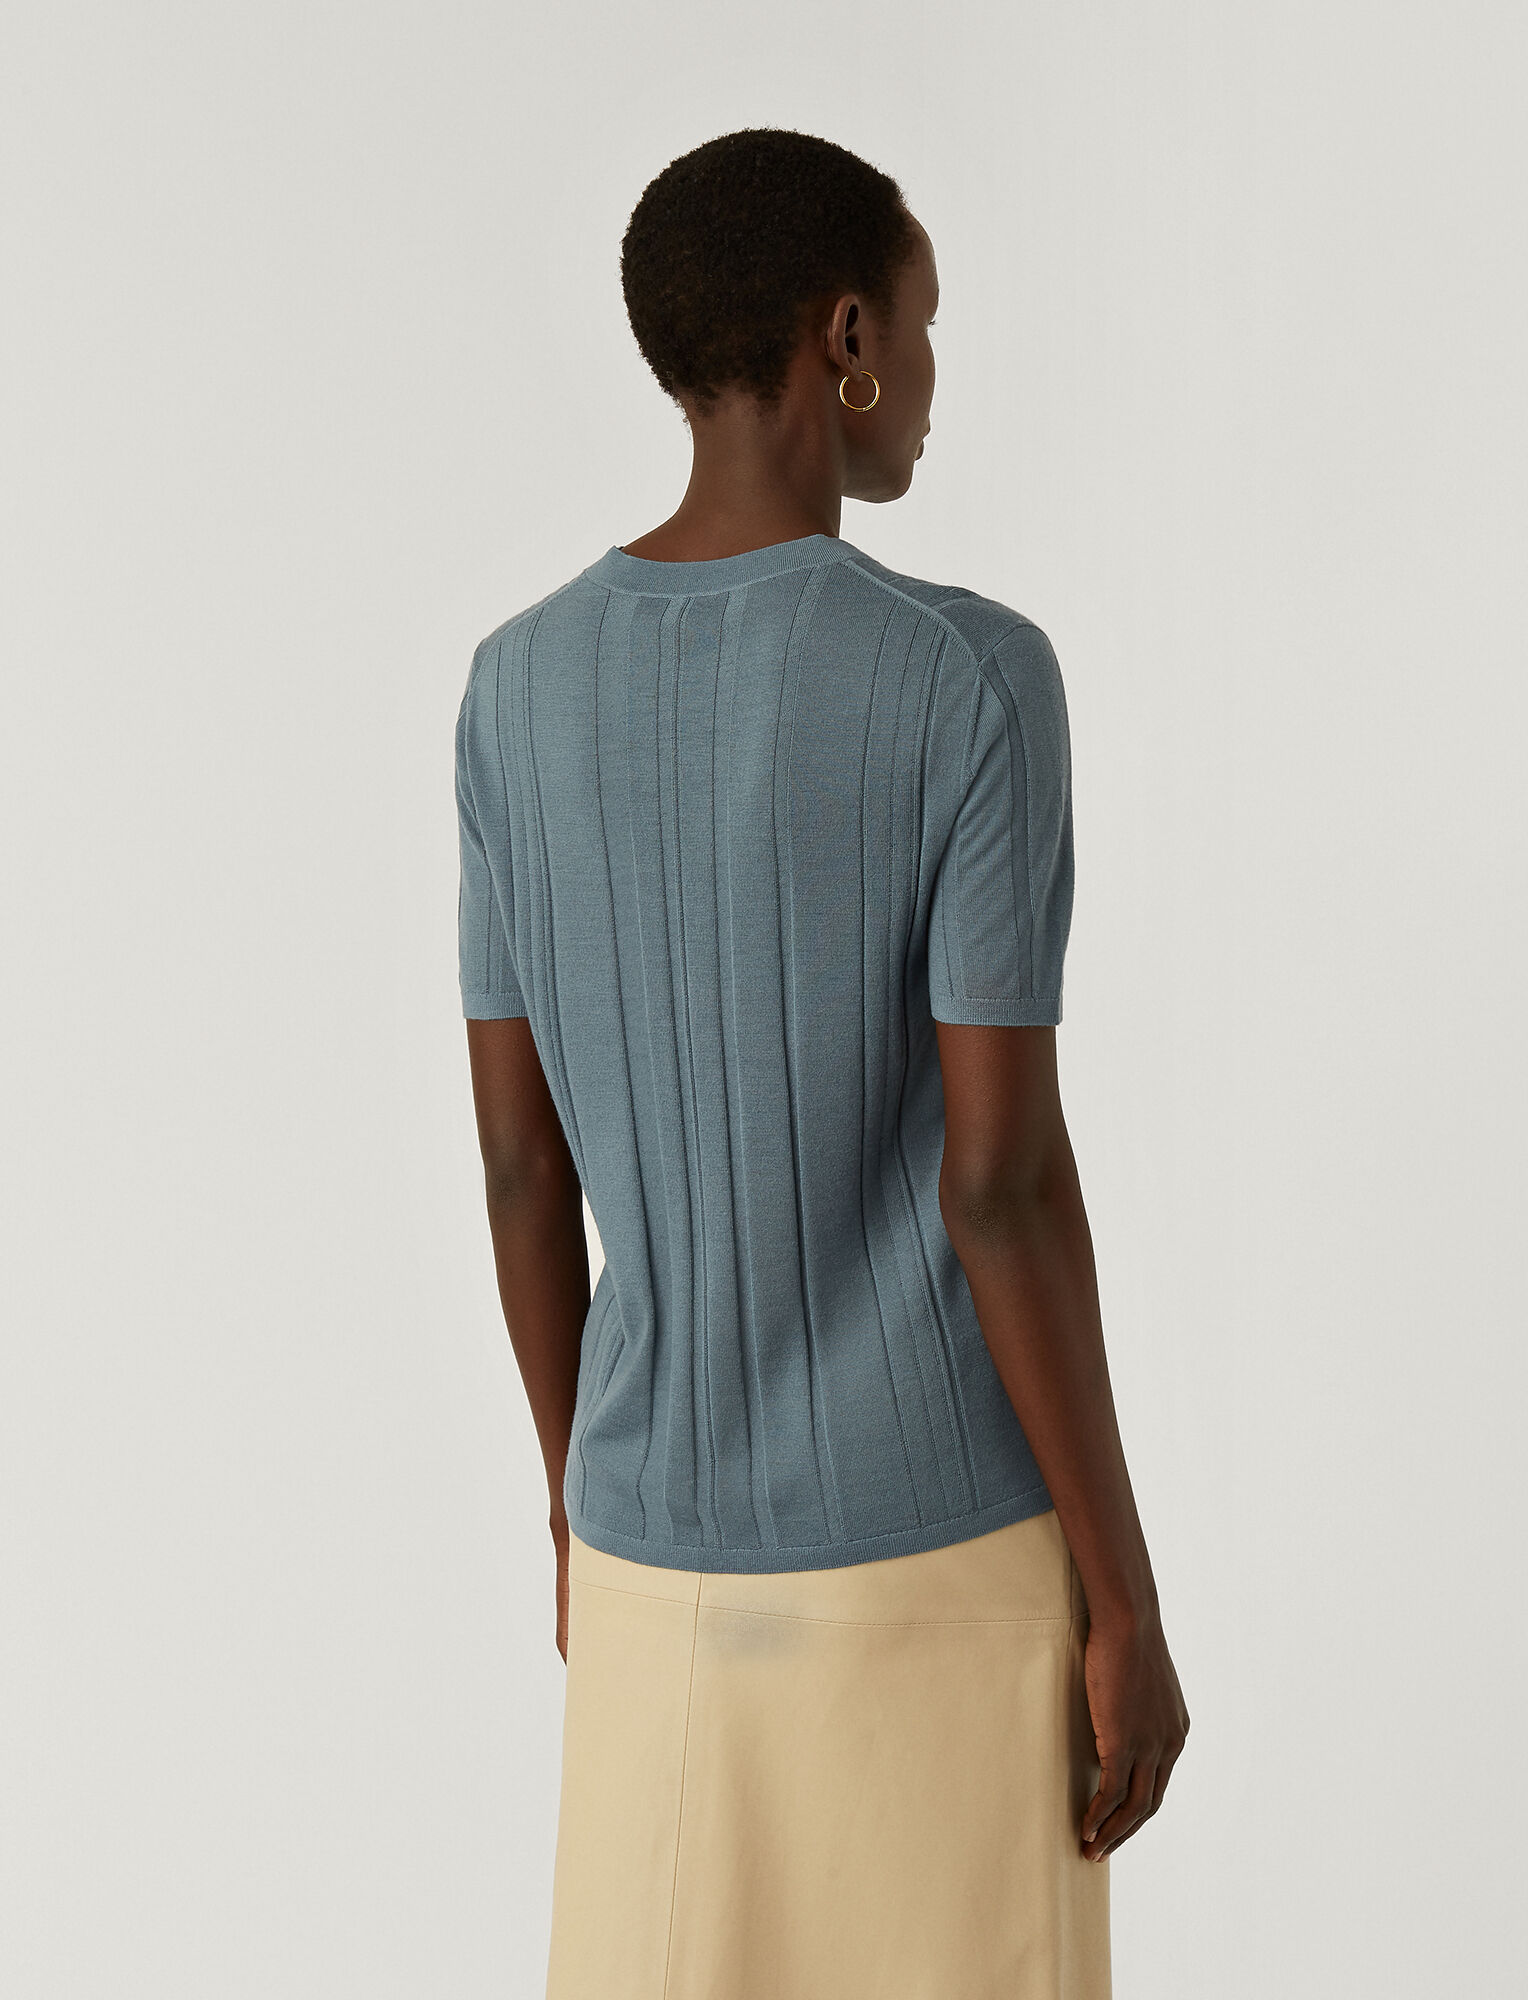 Joseph, Fine Merinos Short Sleeved Top, in BLUE STEEL